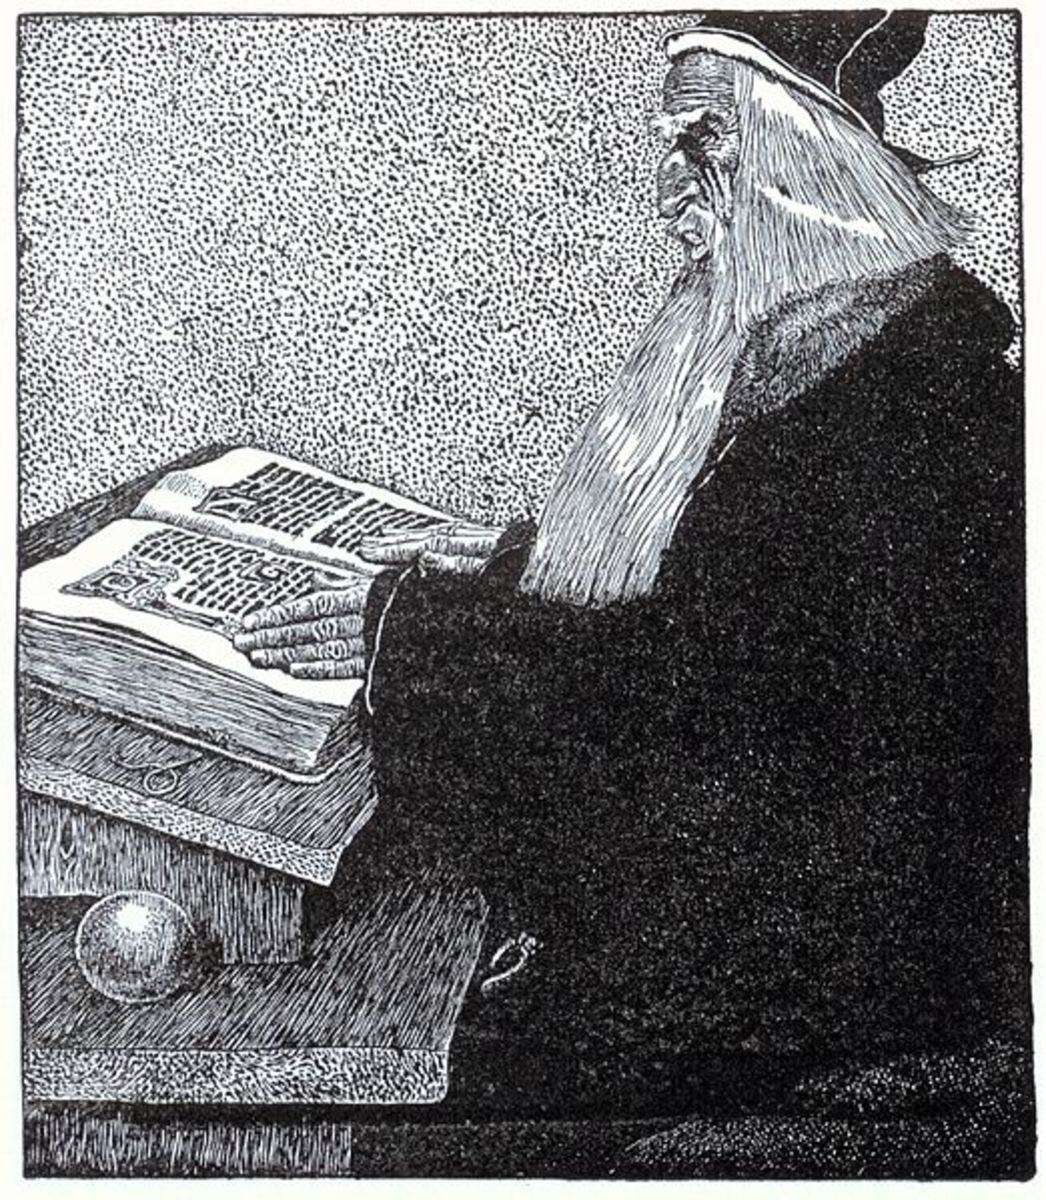 The Enchanter Merlin, by Howard Pyle, 1903